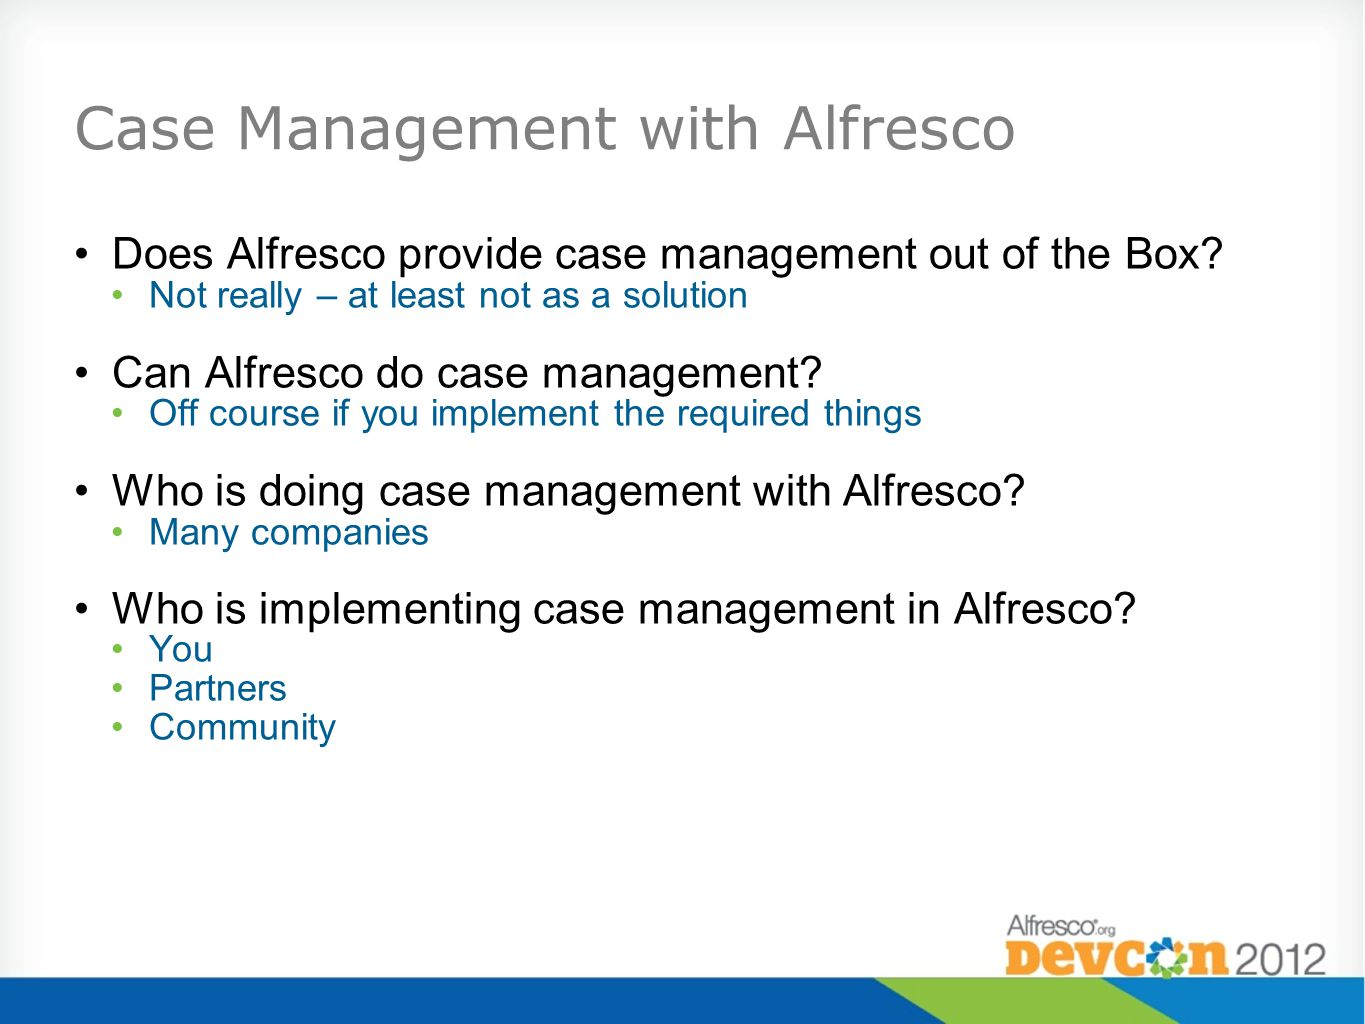 Case Management with Alfresco